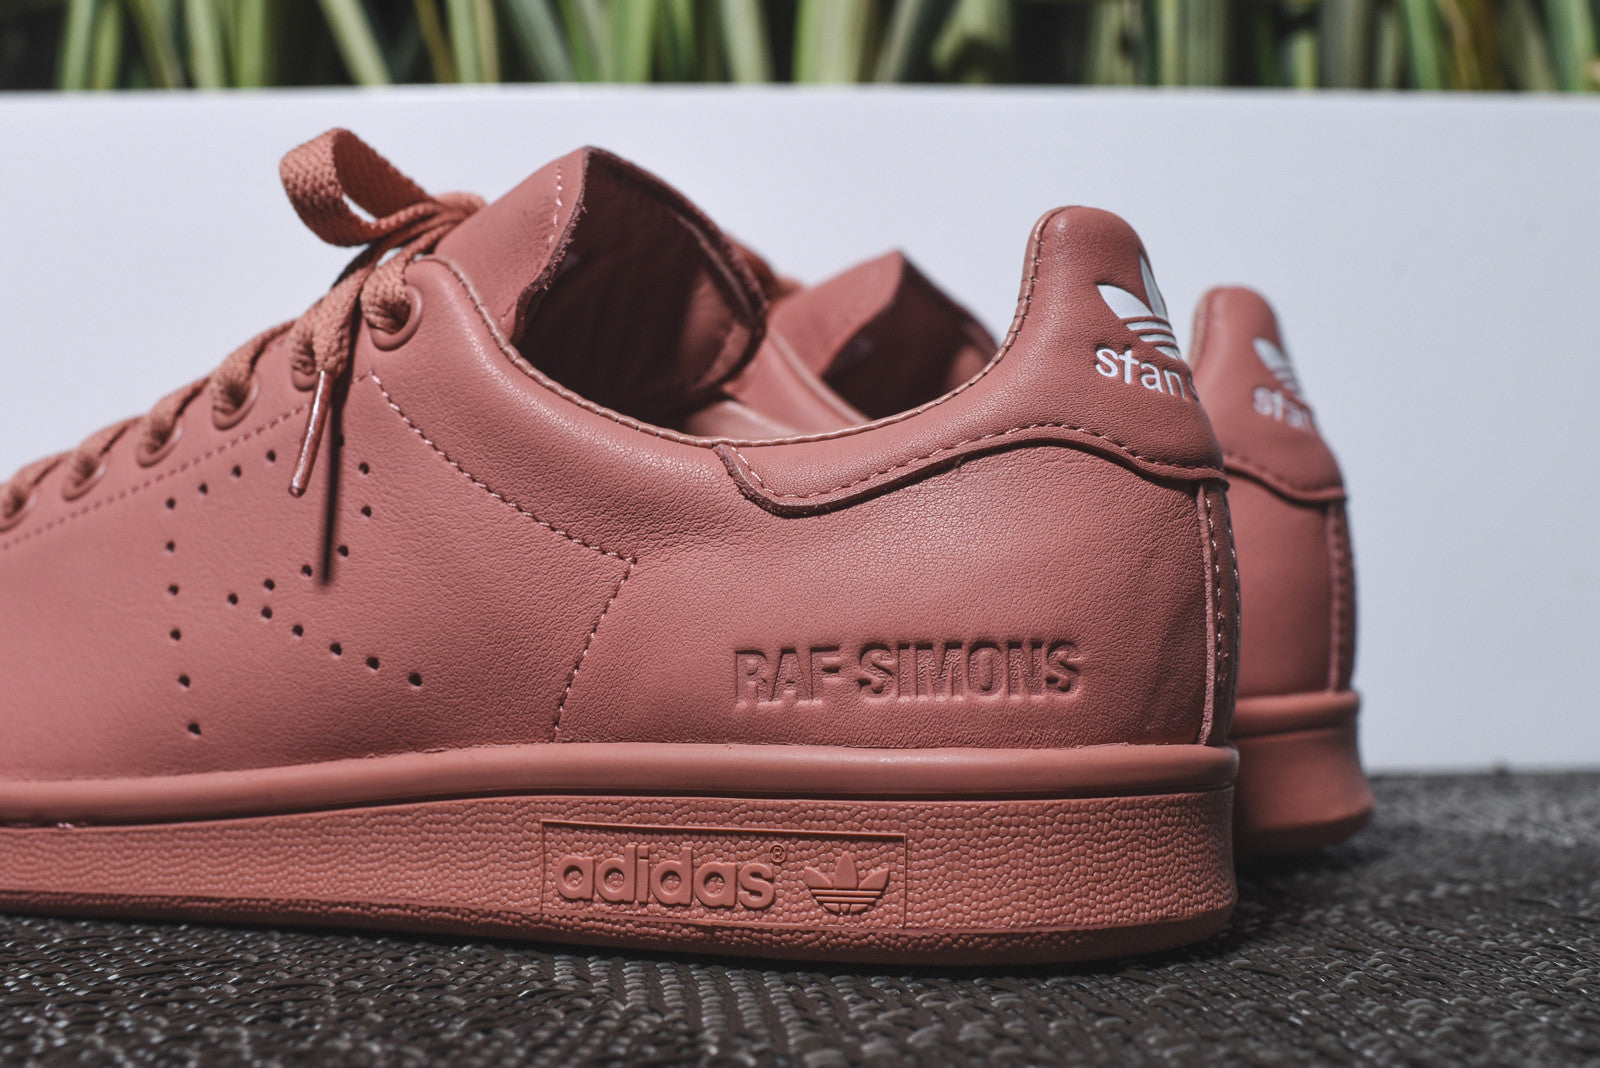 adidas stan smith raf simons. Black Bedroom Furniture Sets. Home Design Ideas